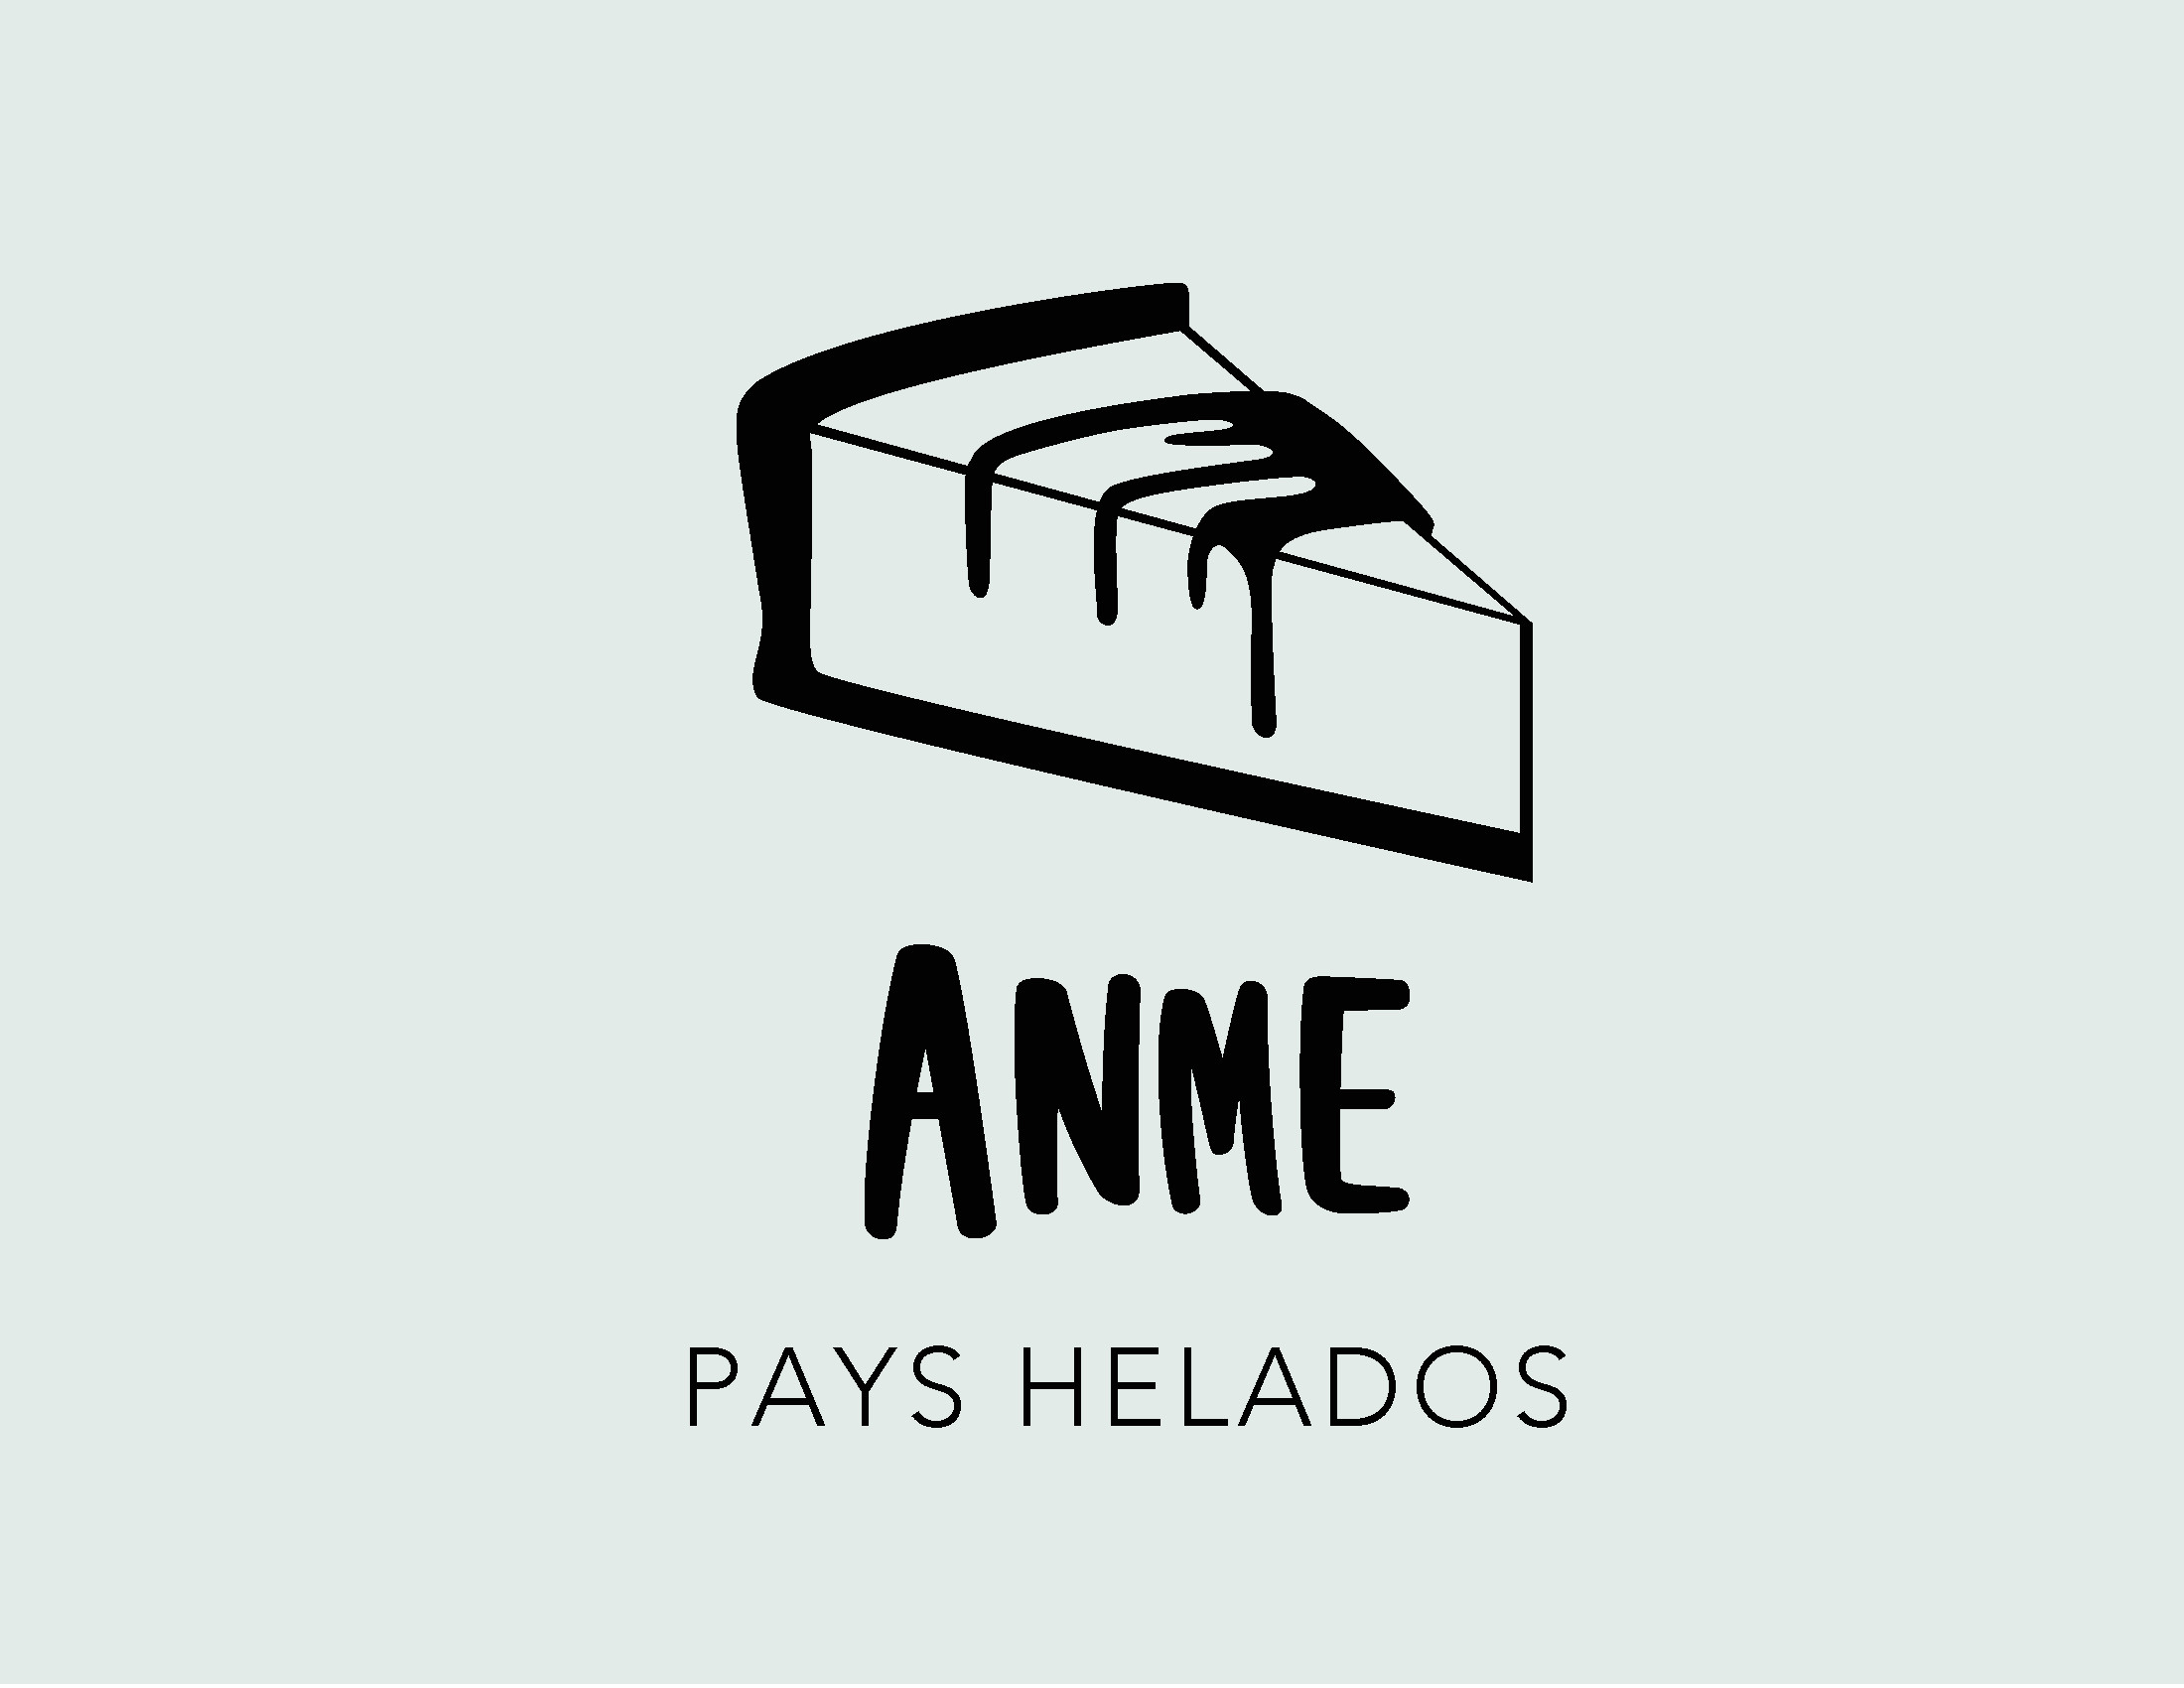 ANME Pays helados